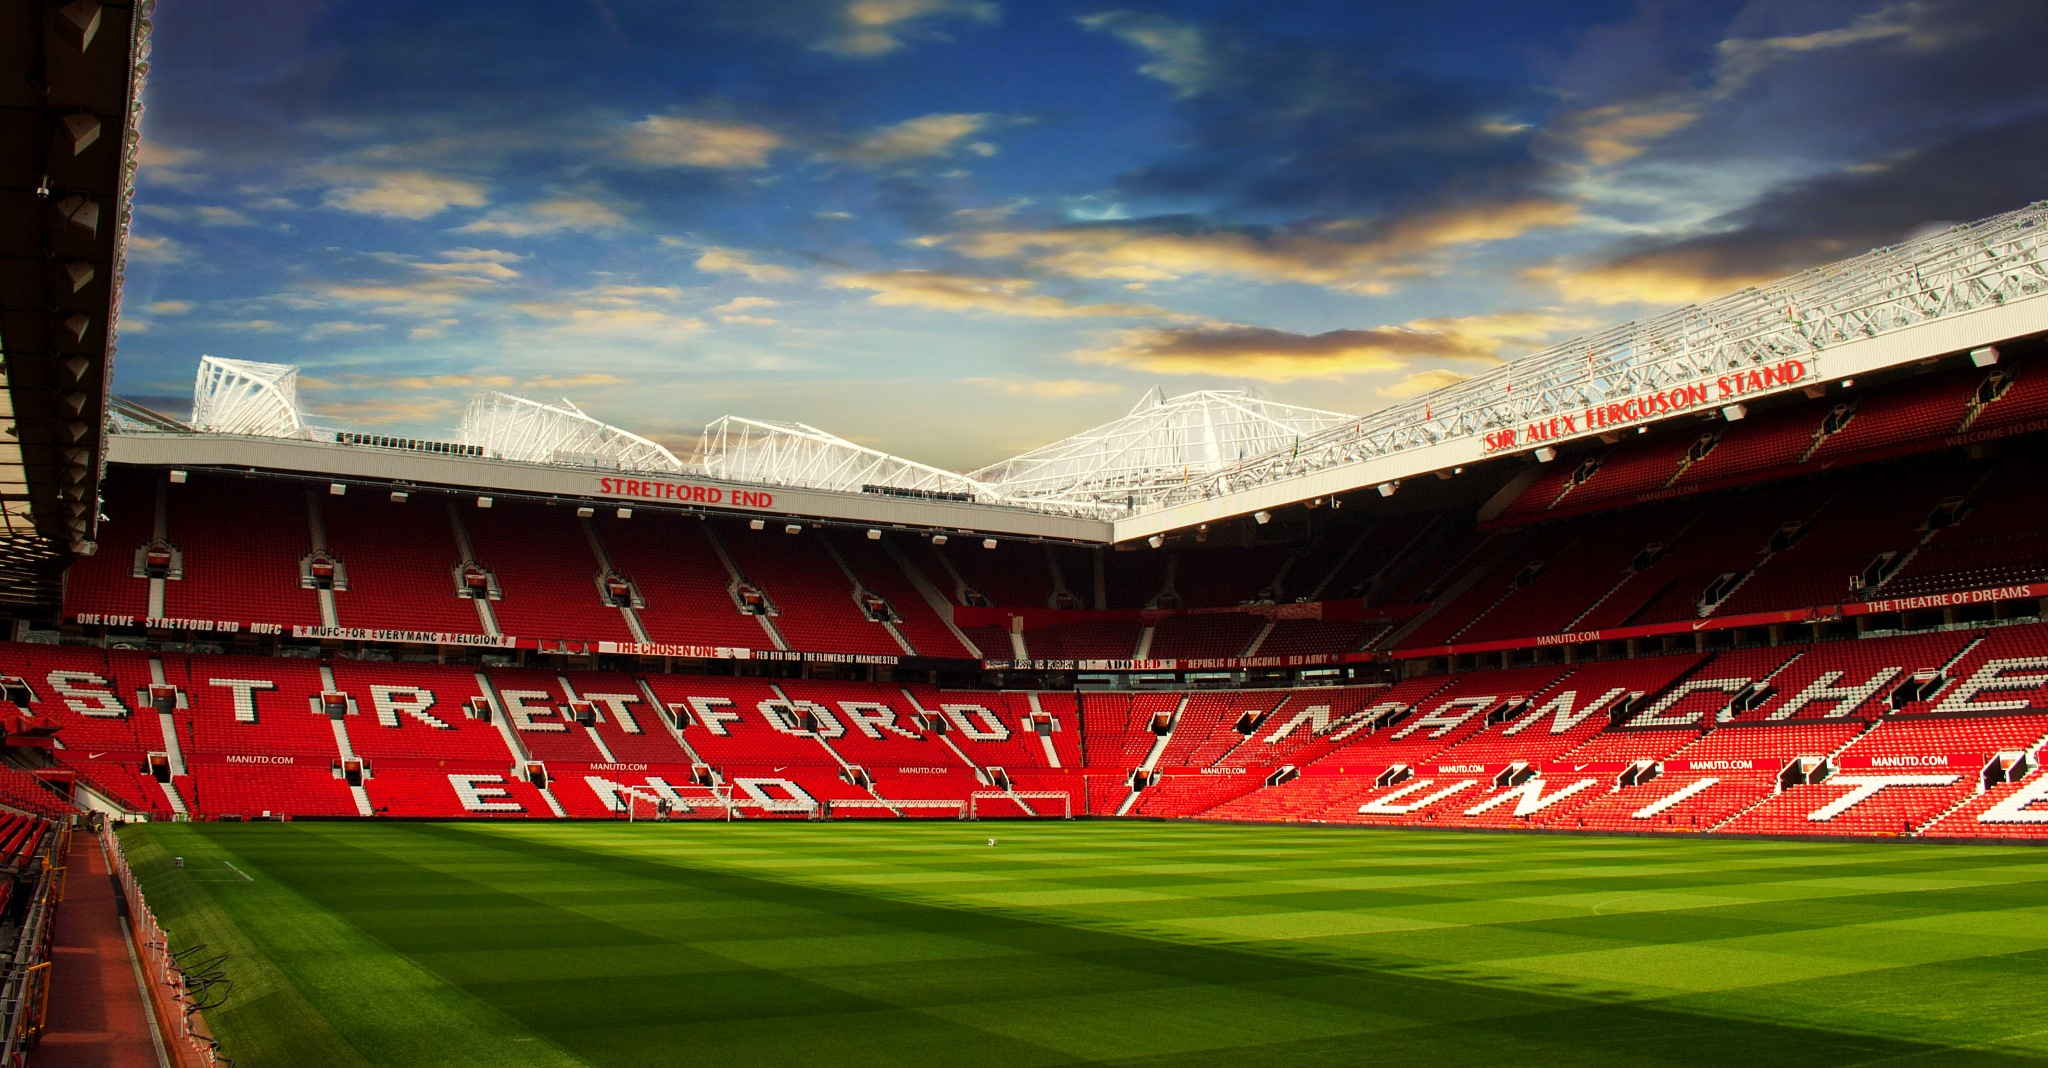 Theatre of Dreams - Old Trafford MUFC by PaulsImaging